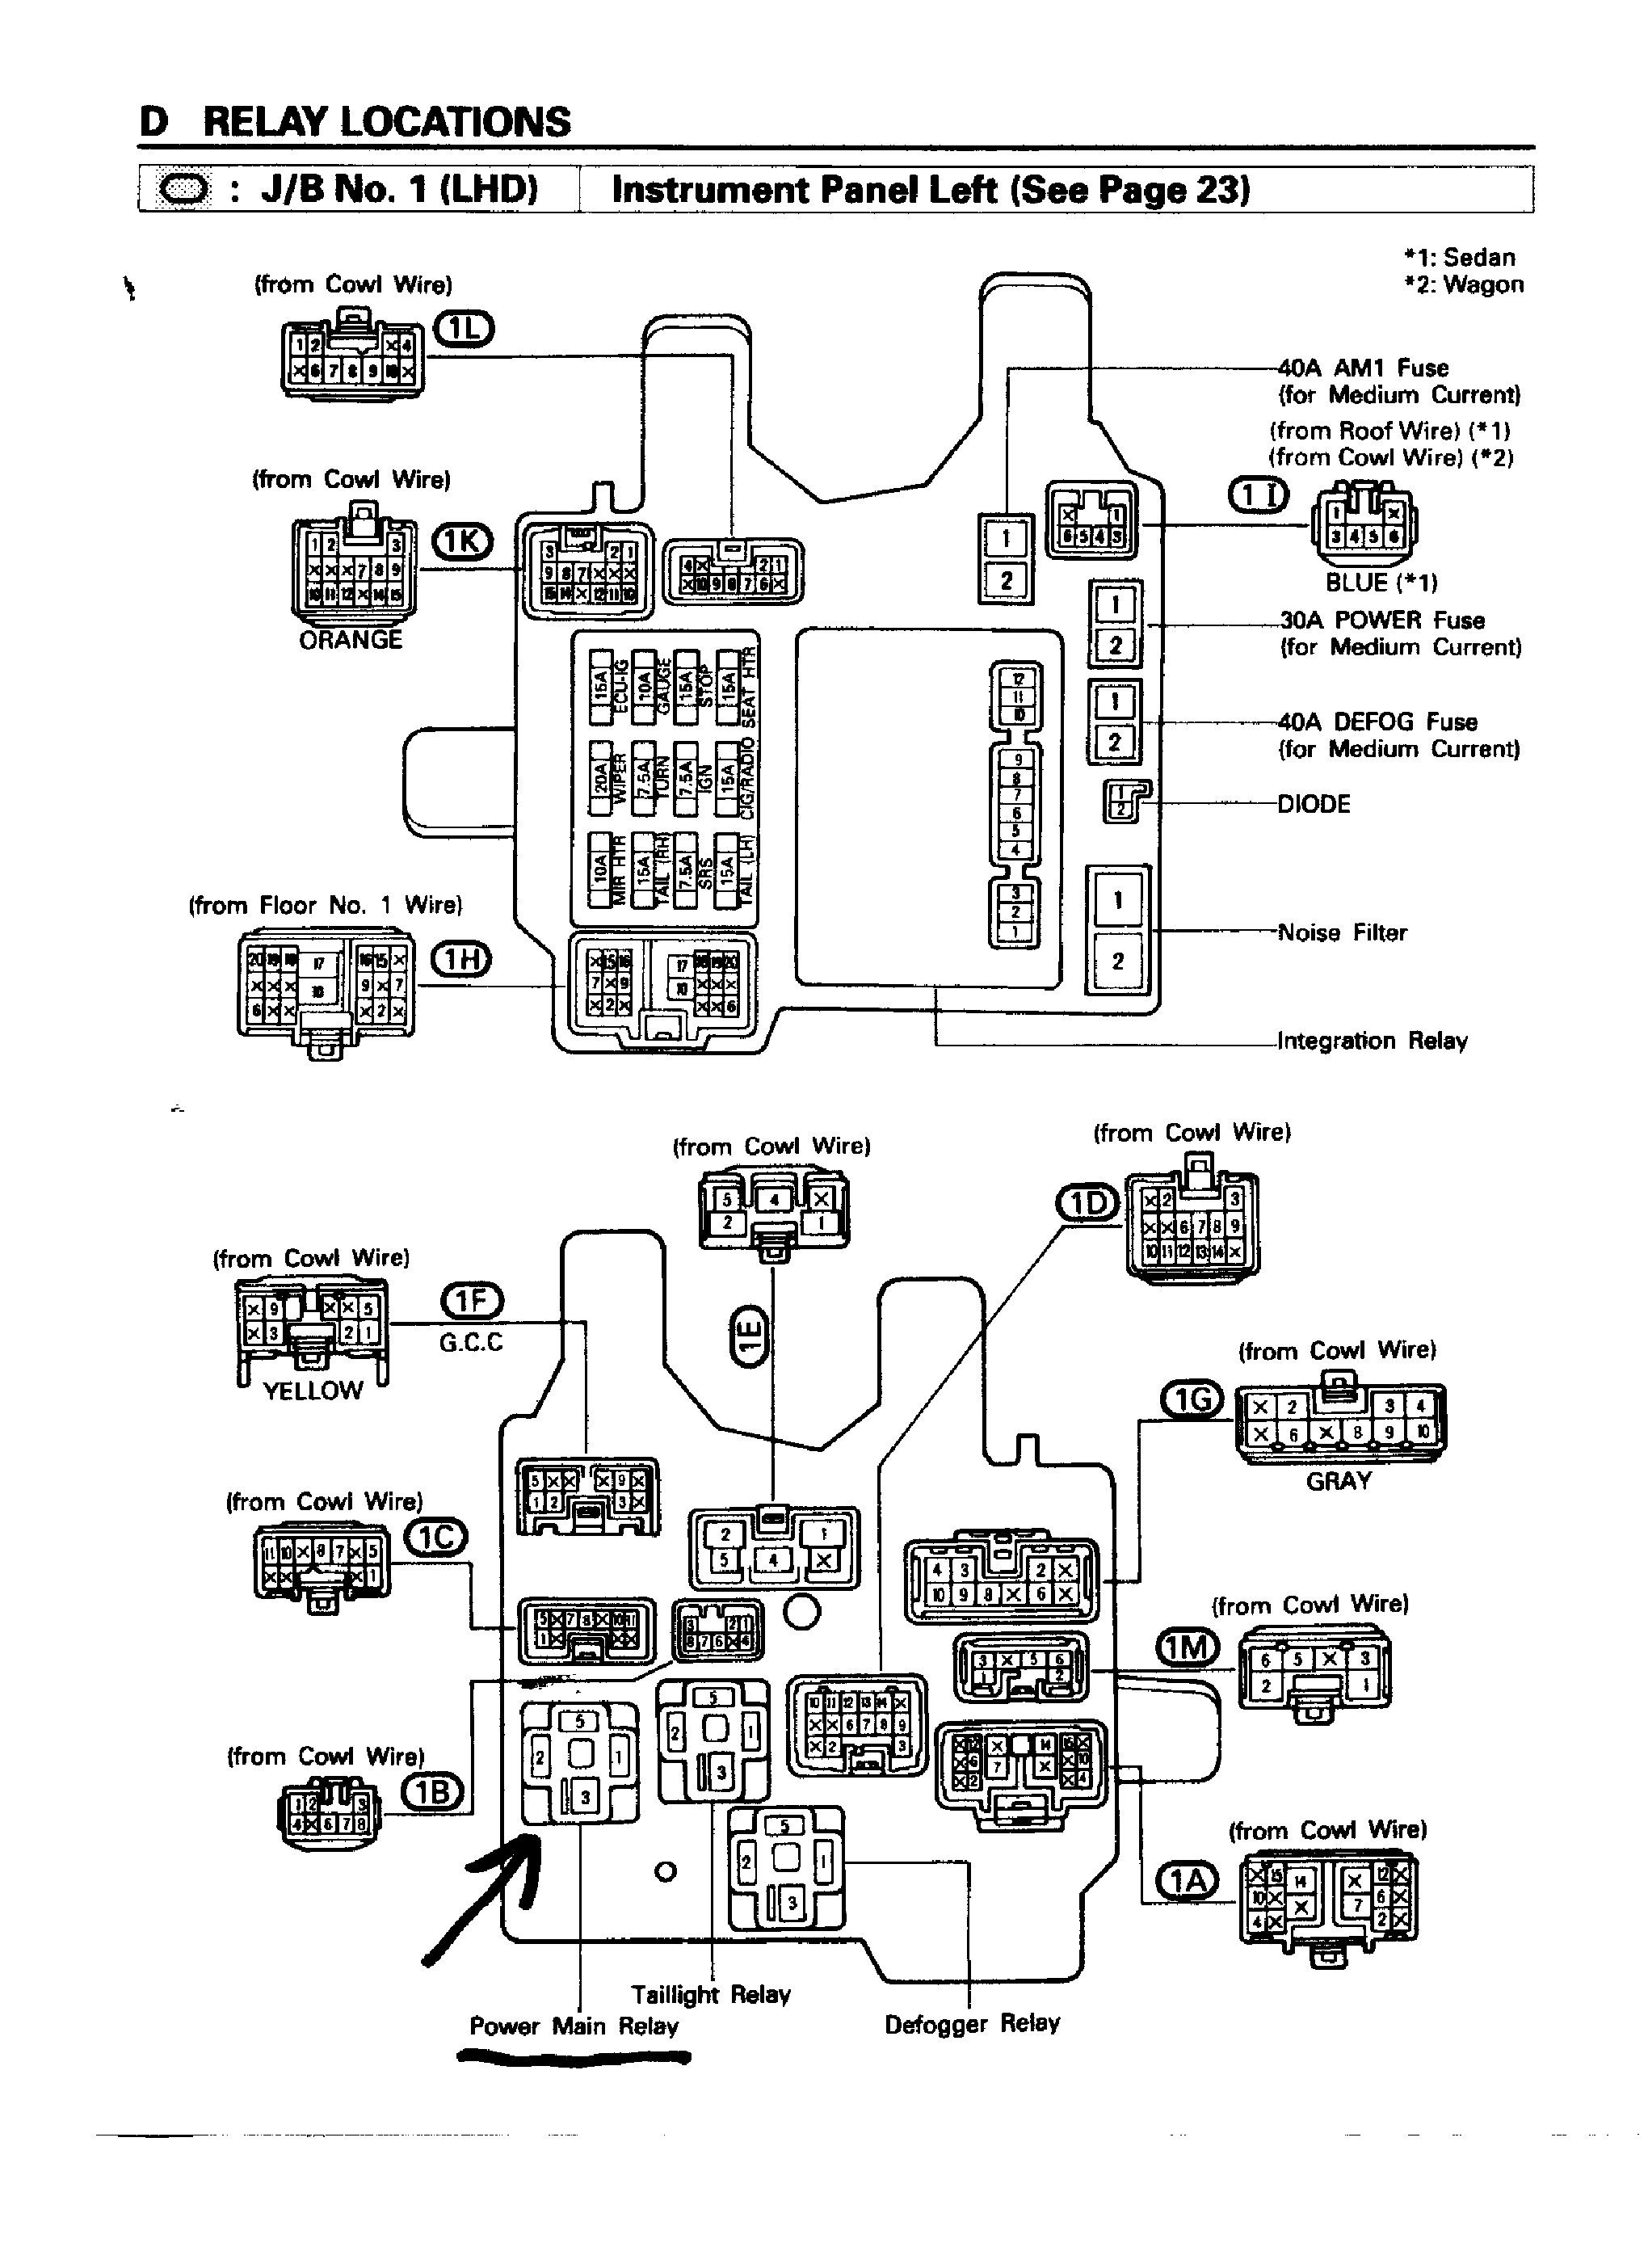 Toyota 22r Engine Diagram Wiring Diagram for 1992 toyota Pickup Wiring Diagram Used Of Toyota 22r Engine Diagram toyota Hilux 22r Engine Diagram Wiring Diagram Datasource